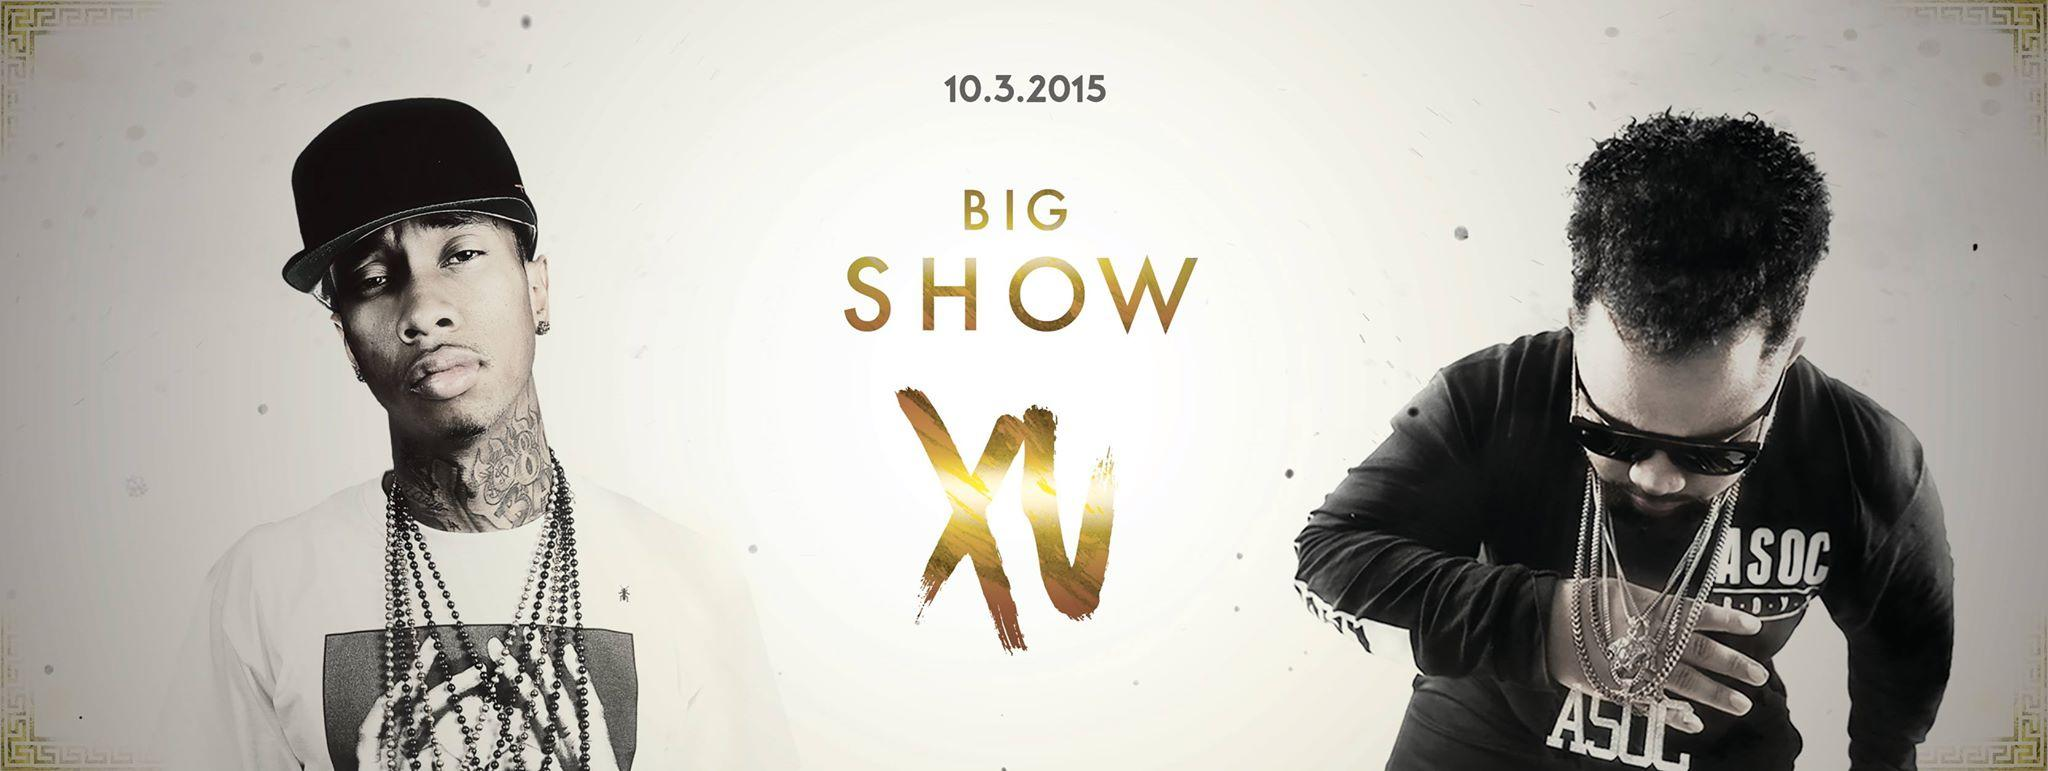 Poster for Big Show.